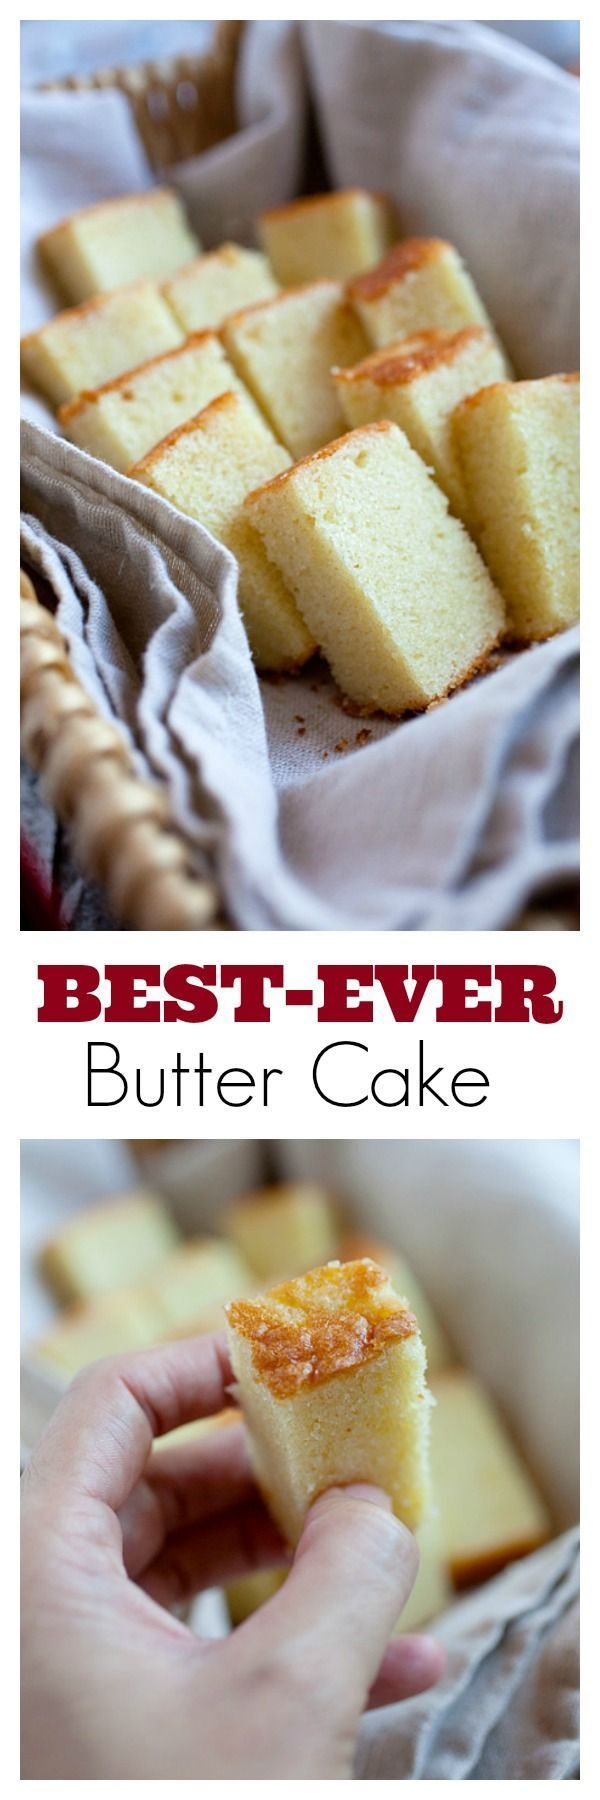 Butter Cake - The BEST and only butter cake recipe you'll need. Super delicious, moist, extremely rich and buttery butter cake | http://rasamalaysia.com